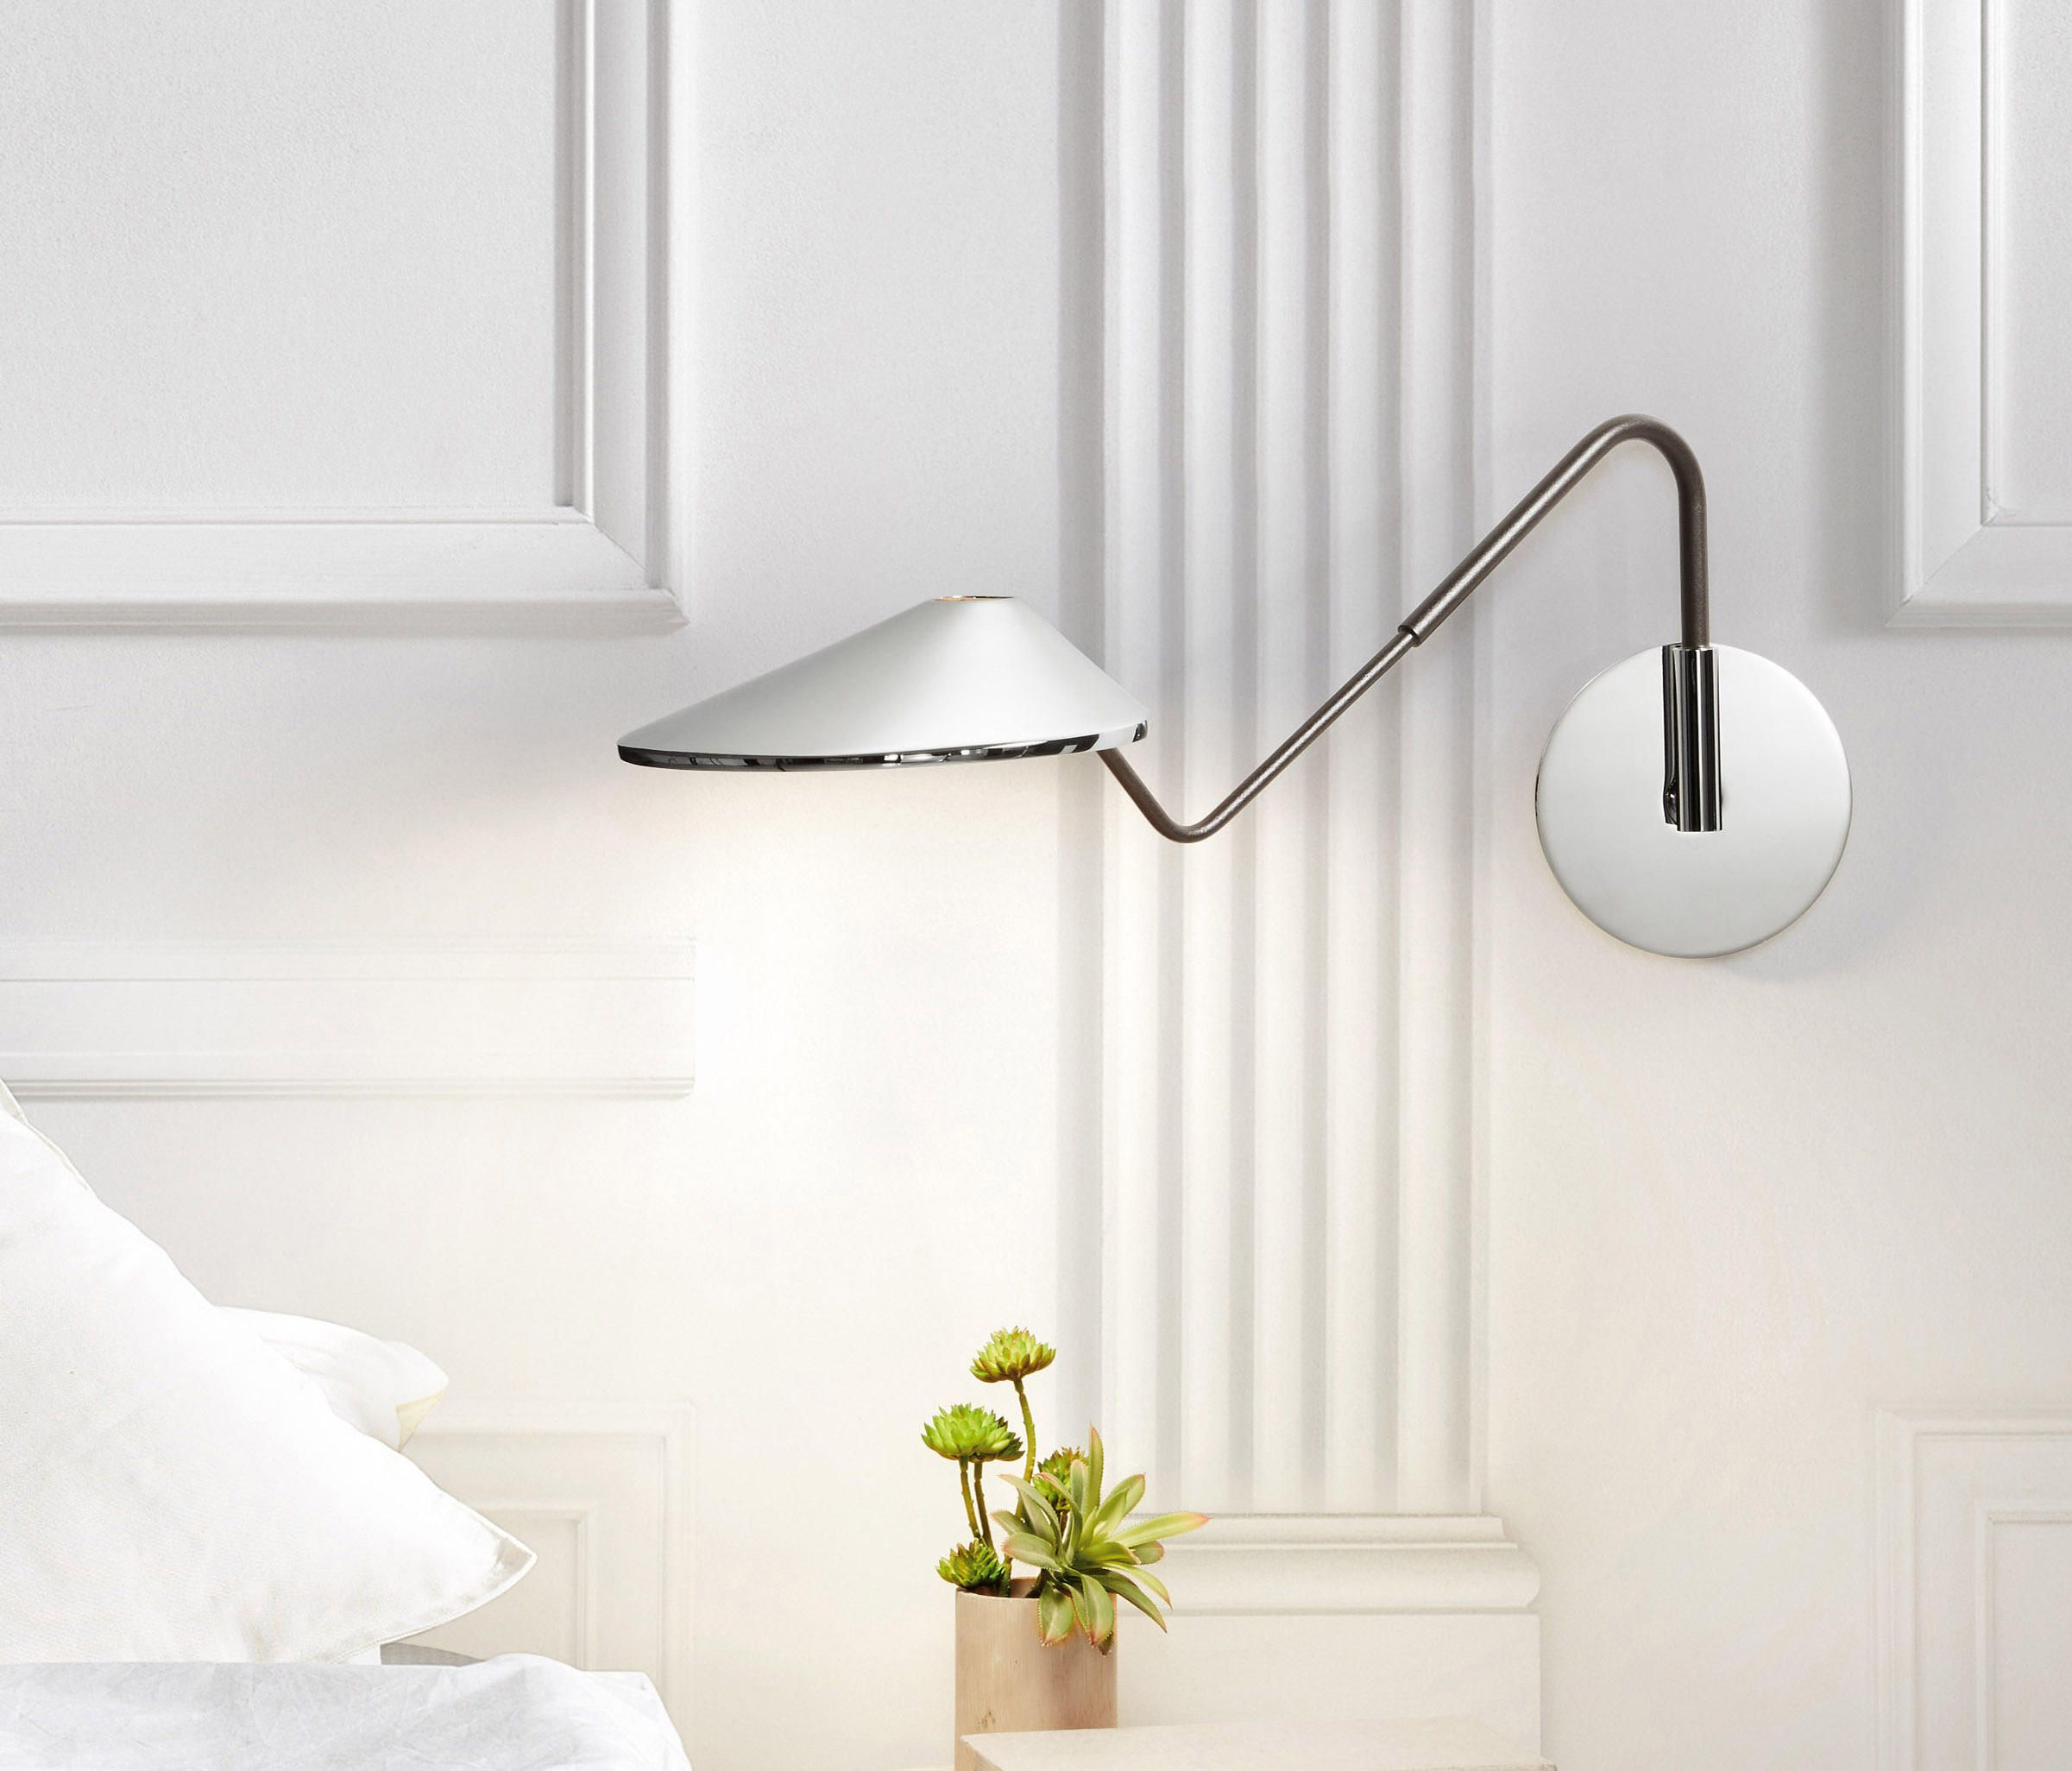 NÓN LÁ A/03 - Designer General lighting from BOVER all ... on Decorative Wall Sconces Non Lighting id=89408